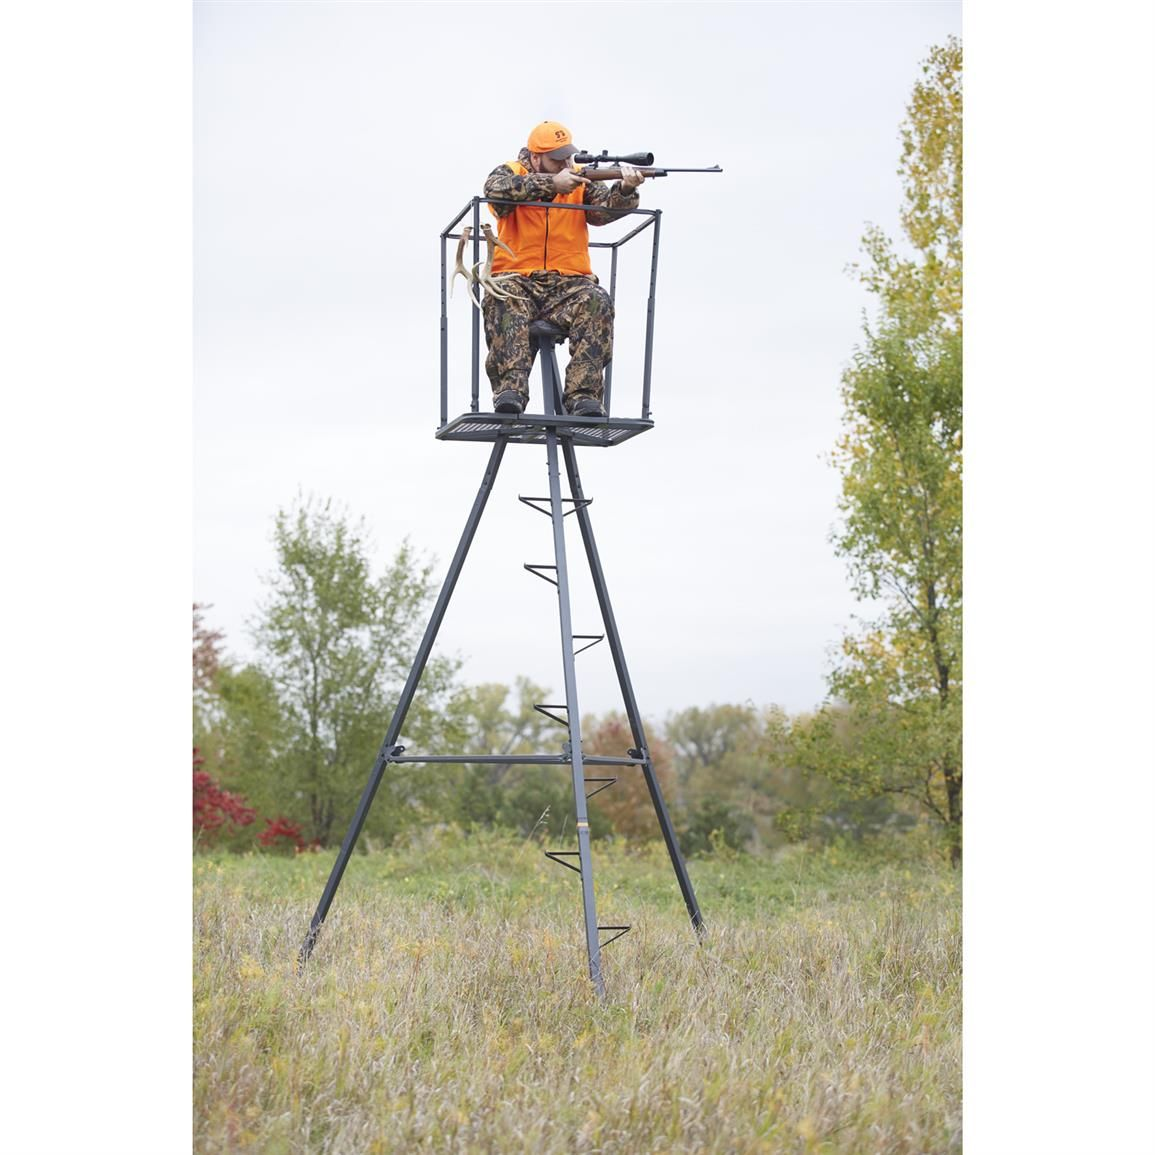 Guide Gear 13 Deluxe Tripod Deer Stand In 2020 Tripod Deer Stand Deer Stand Deer Hunting Tips